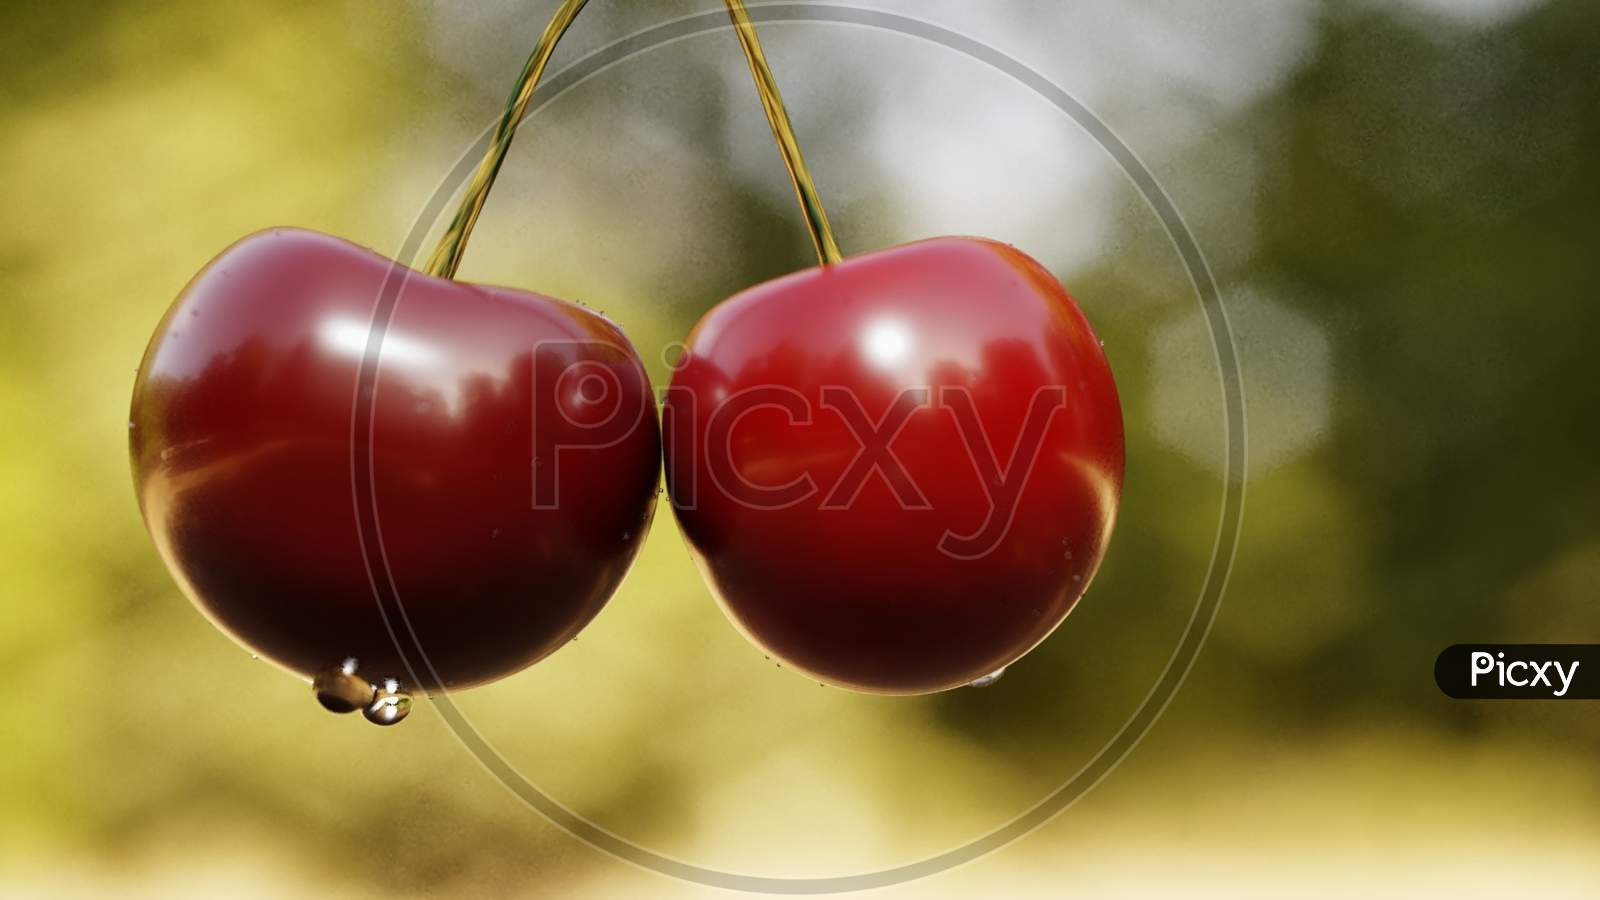 Closeup Of Fresh Two Cherries Hanging On A Cherry Tree Branch With Water Droplets On Cherries After Rain